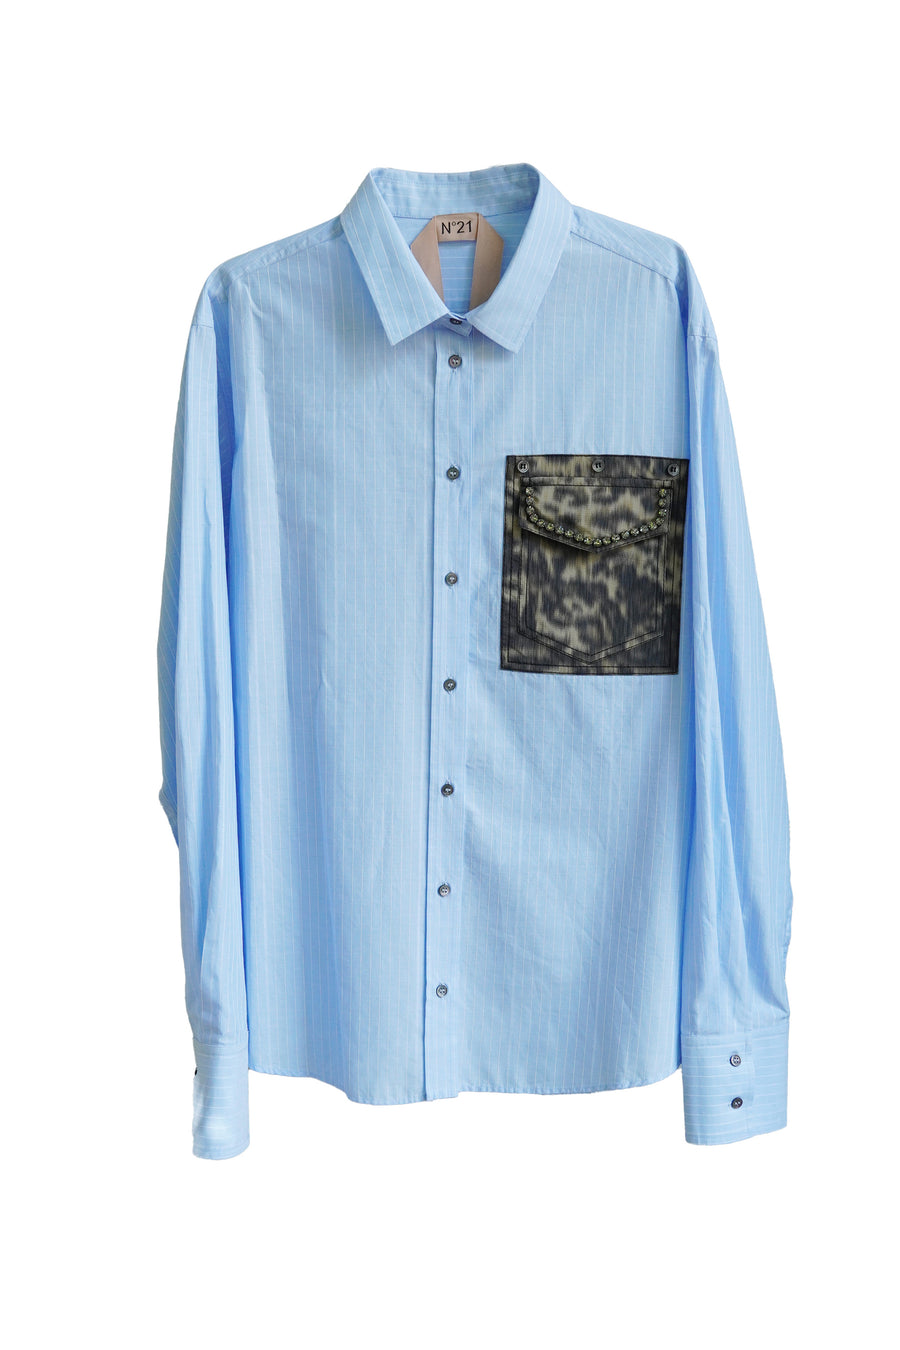 Blue Shirt with Camo Print Pocket